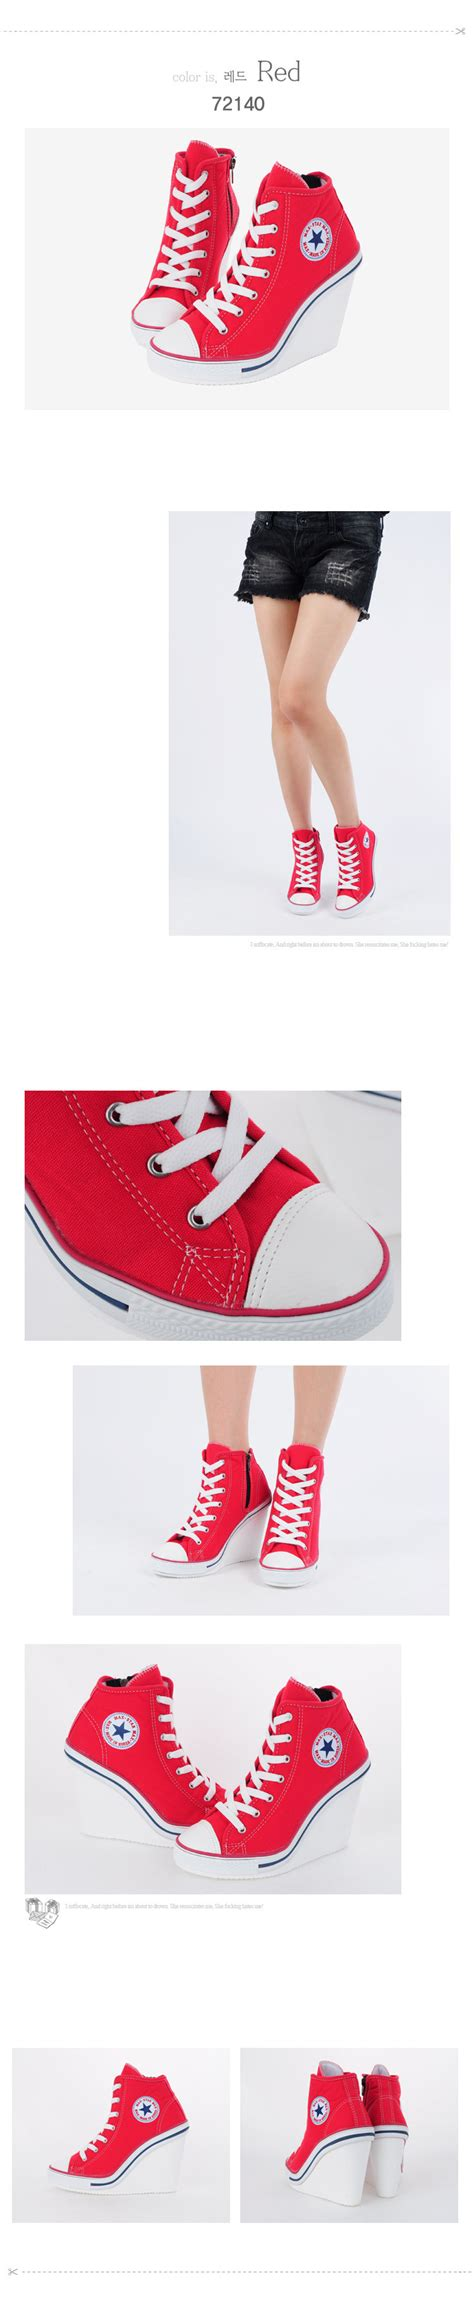 Wedges Fashion Korea 777 3 Warna womens shoes canvas wedge high top heel lace up fashion sneakers 777 side zipper ebay